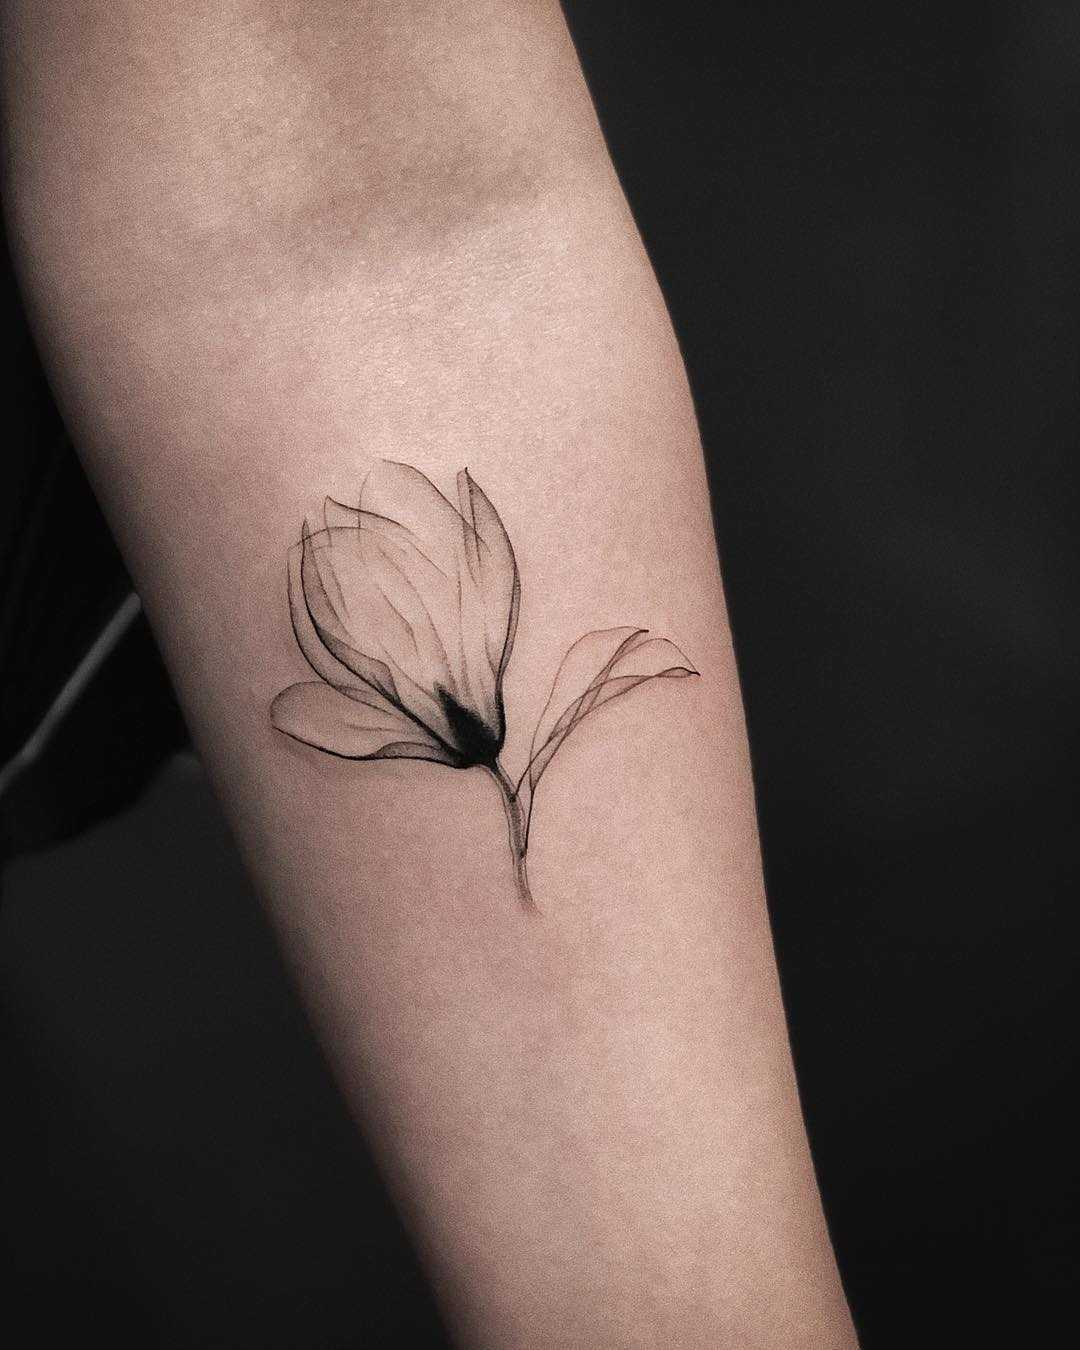 X-ray Magnolia flower tattoo by Jakub Nowicz